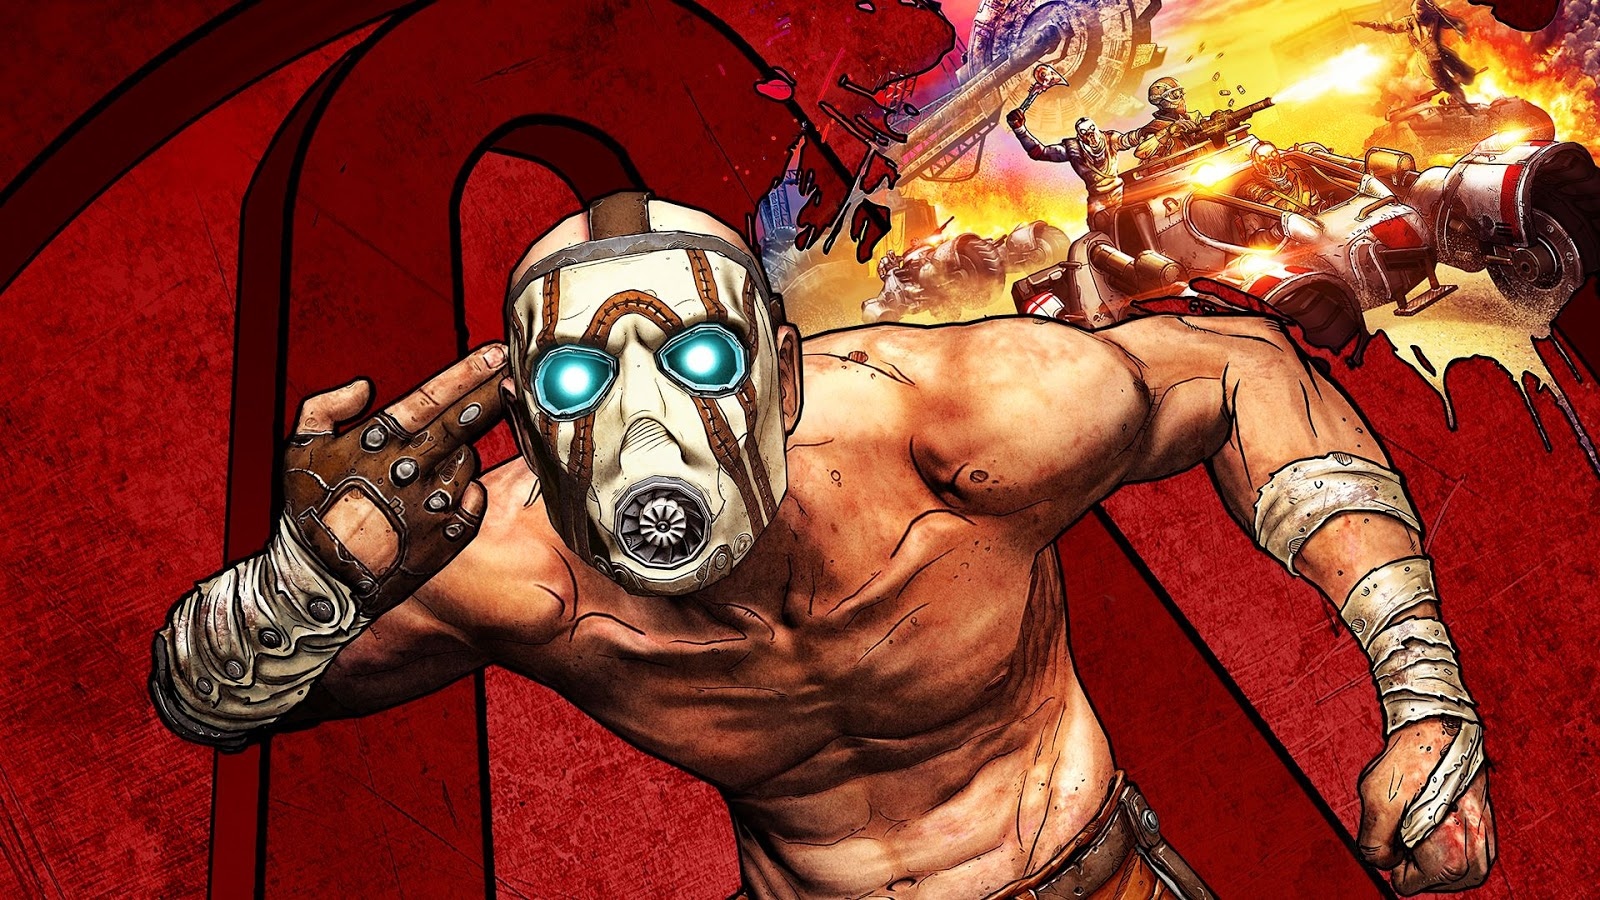 The one who resurrected Duke Nukem: interview with Randy Pitchford, magician from Gearbox - 2